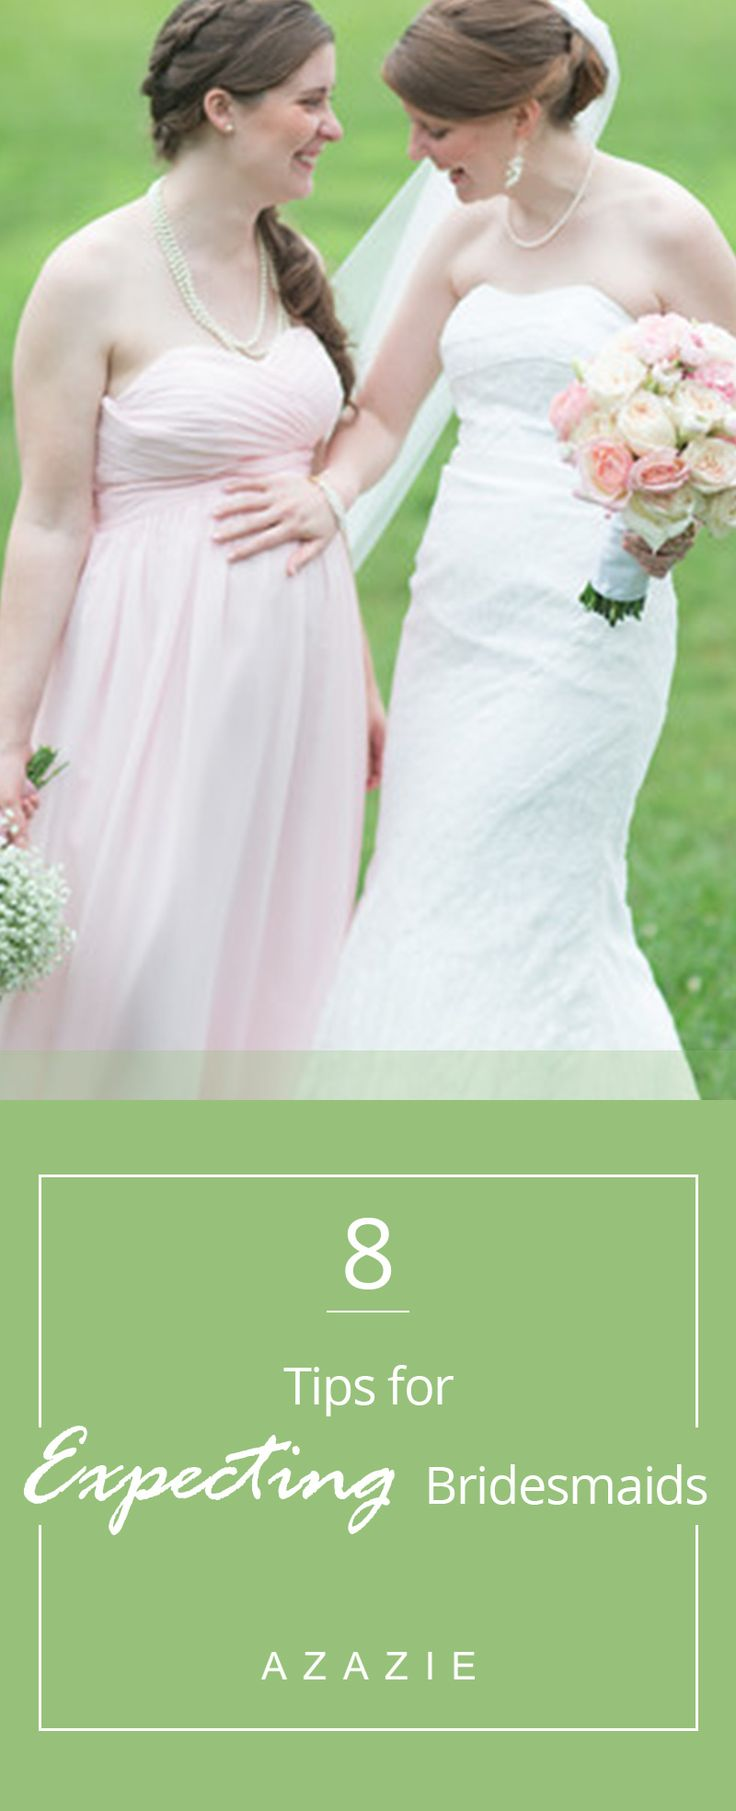 171 best azazie bridesmaid dresses images on pinterest 171 best azazie bridesmaid dresses images on pinterest bridesmaid dress arch and bridal showers ombrellifo Image collections